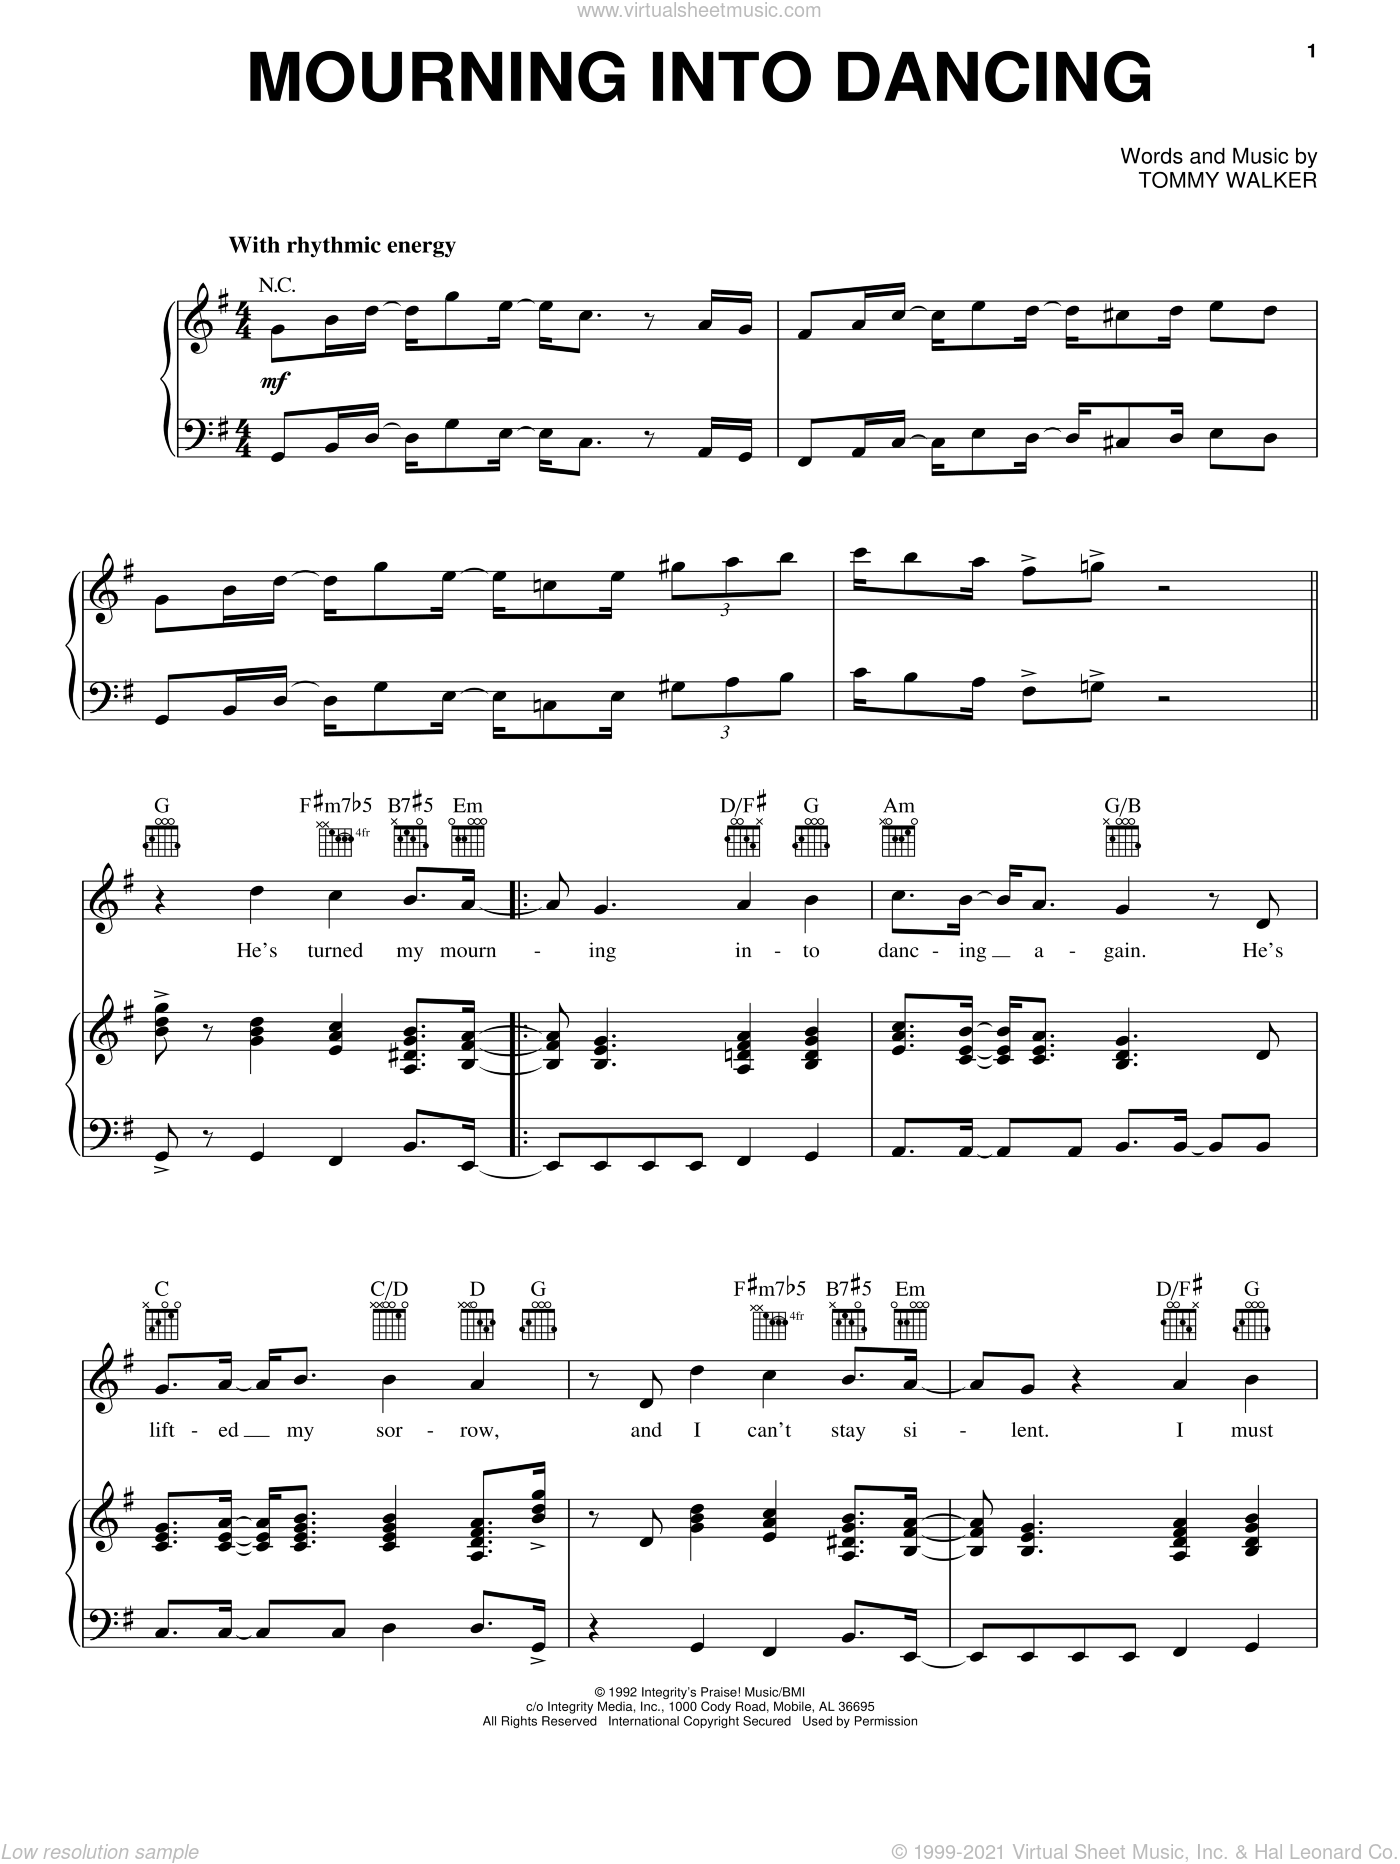 Mourning Into Dancing sheet music for voice, piano or guitar by The Insyderz and Tommy Walker, intermediate skill level